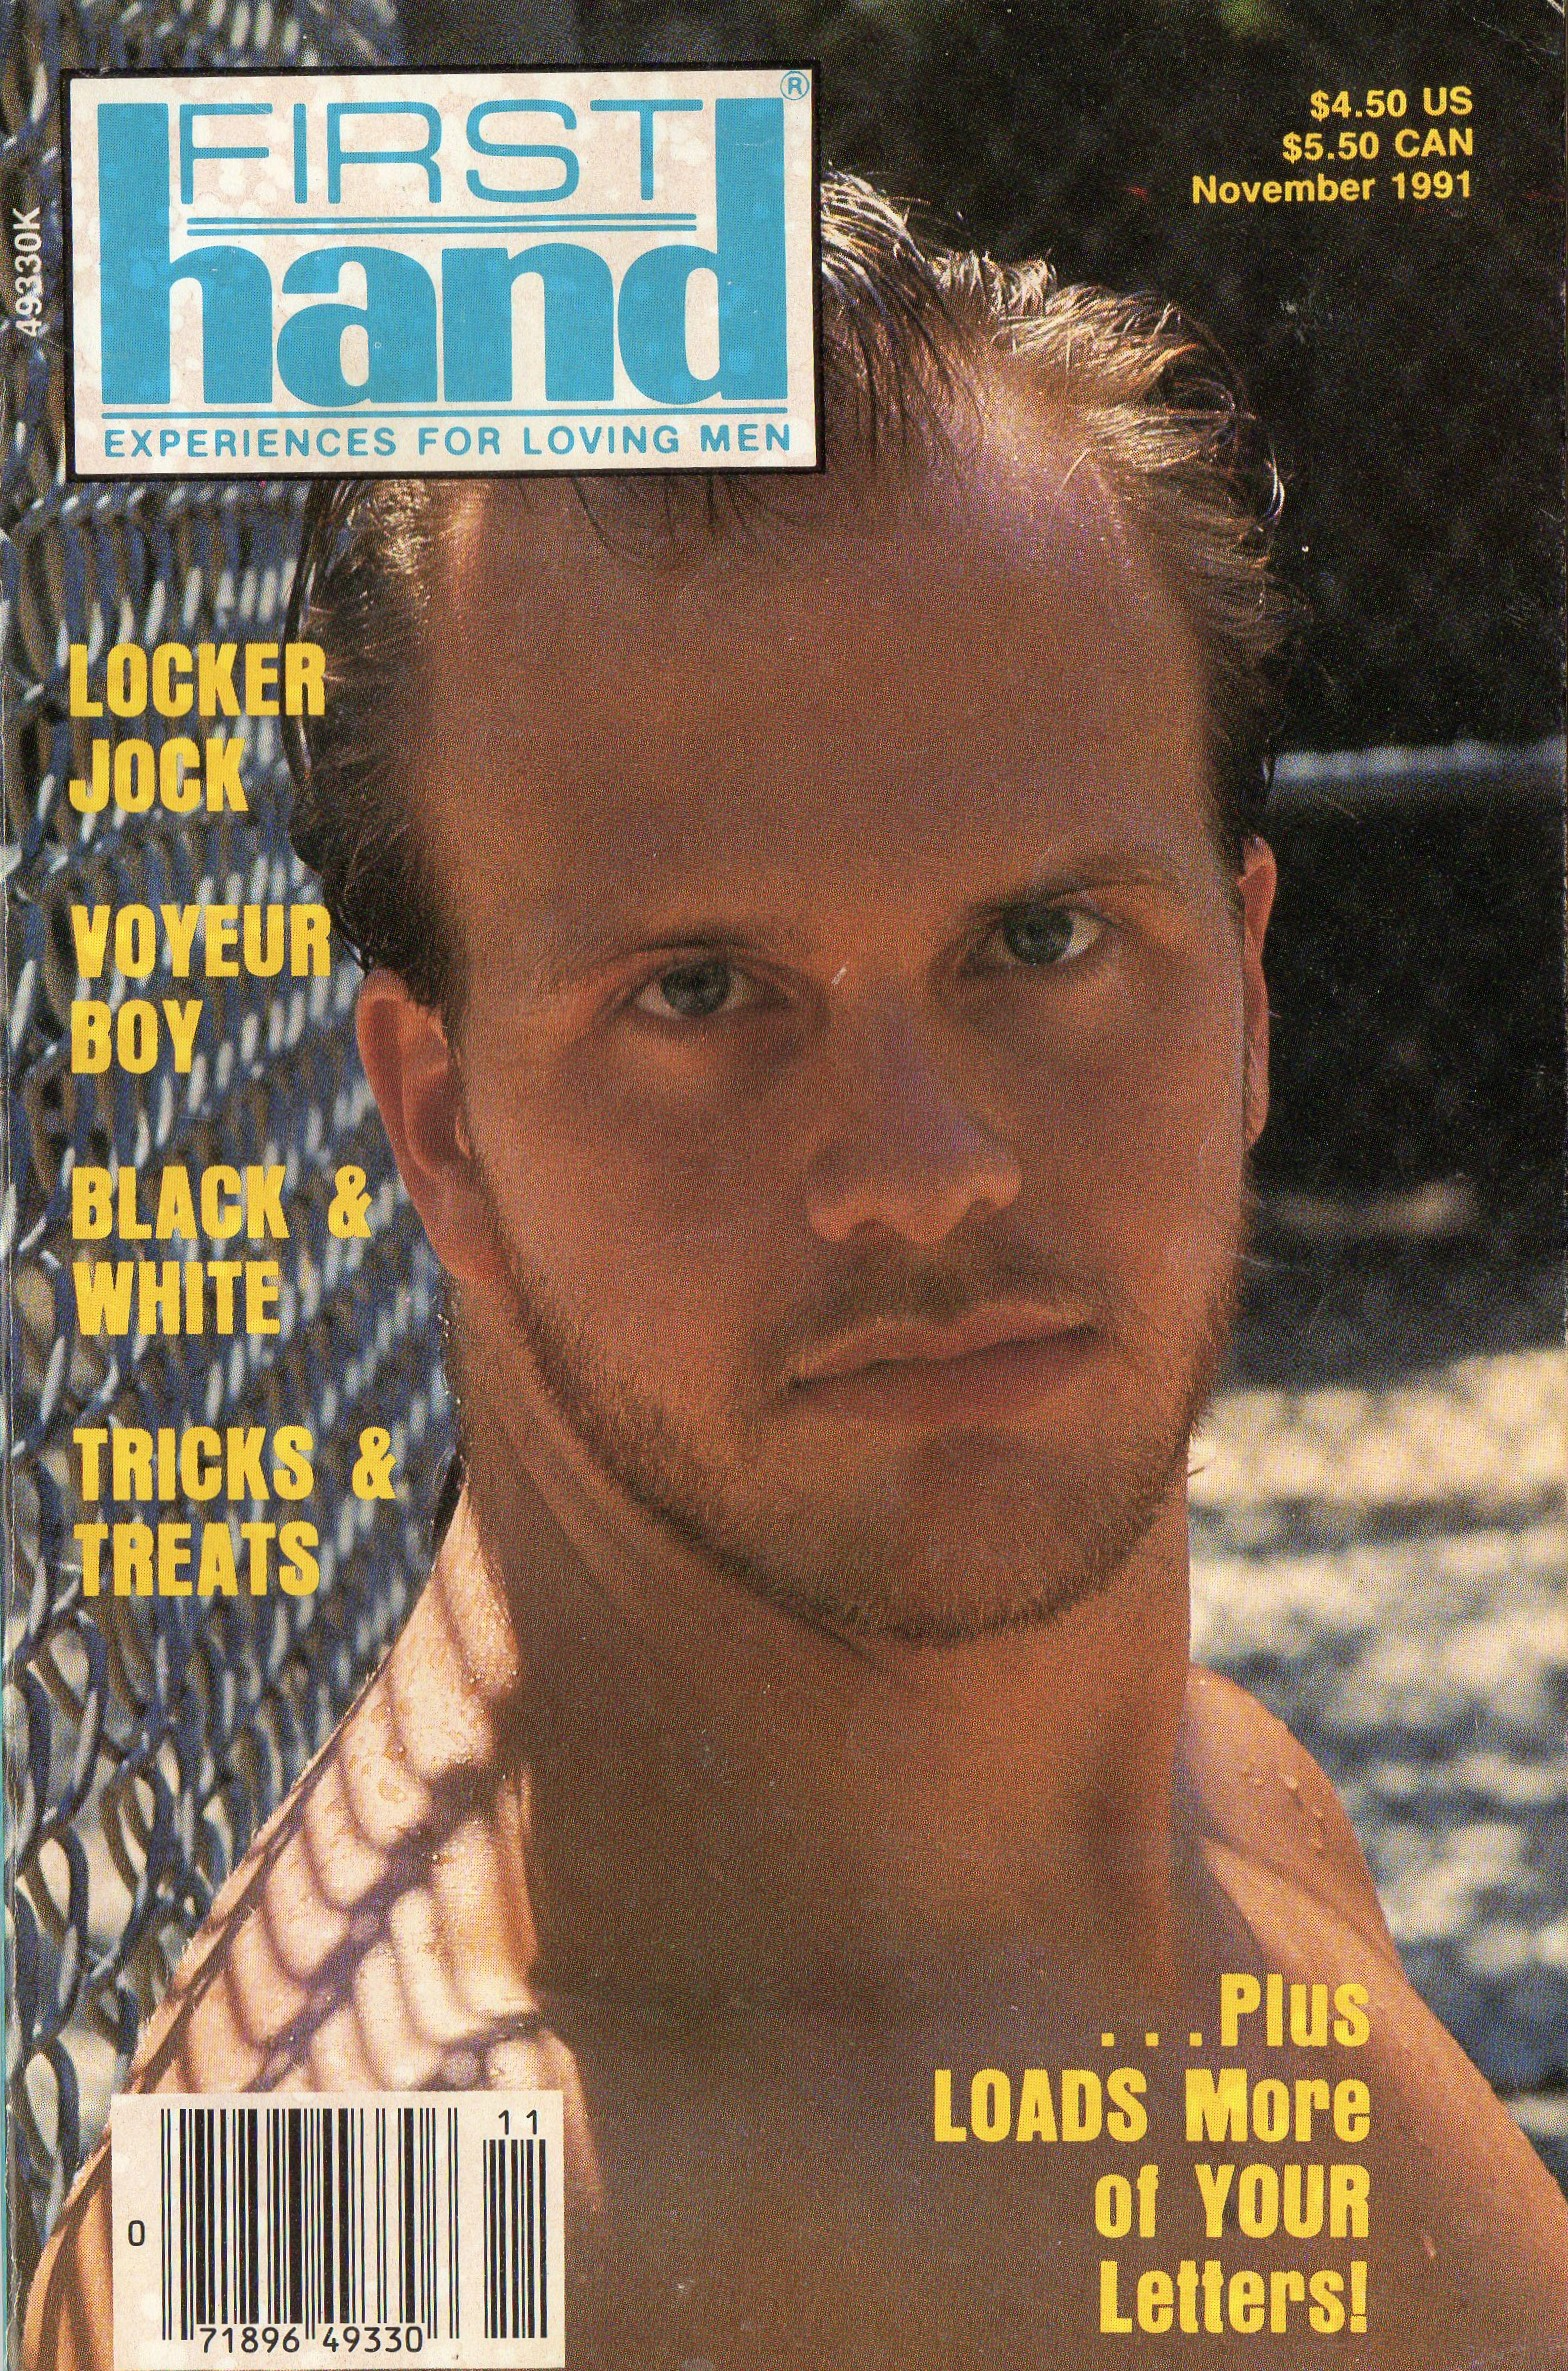 First Hand Experiences for Men (Volume 11 #11 1991 - Released November 1991) Gay Male Digest Magazine